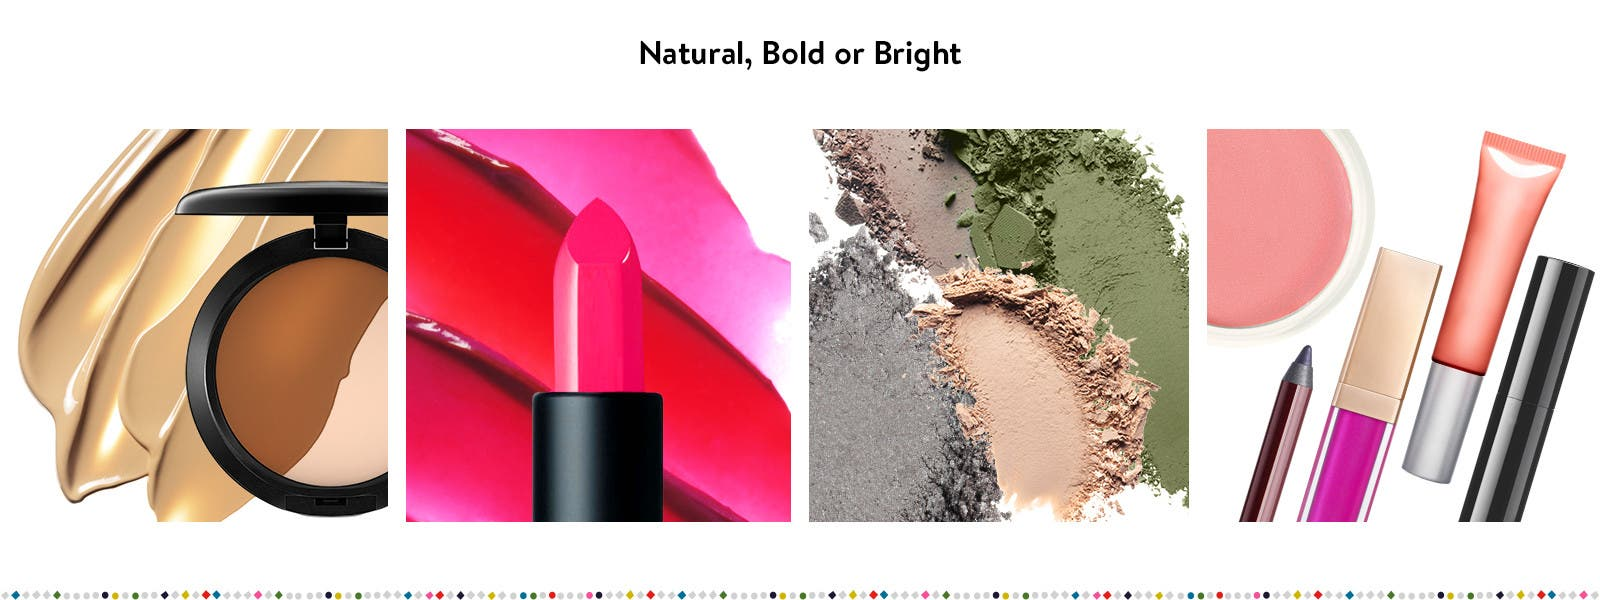 Natural, bold or bright.